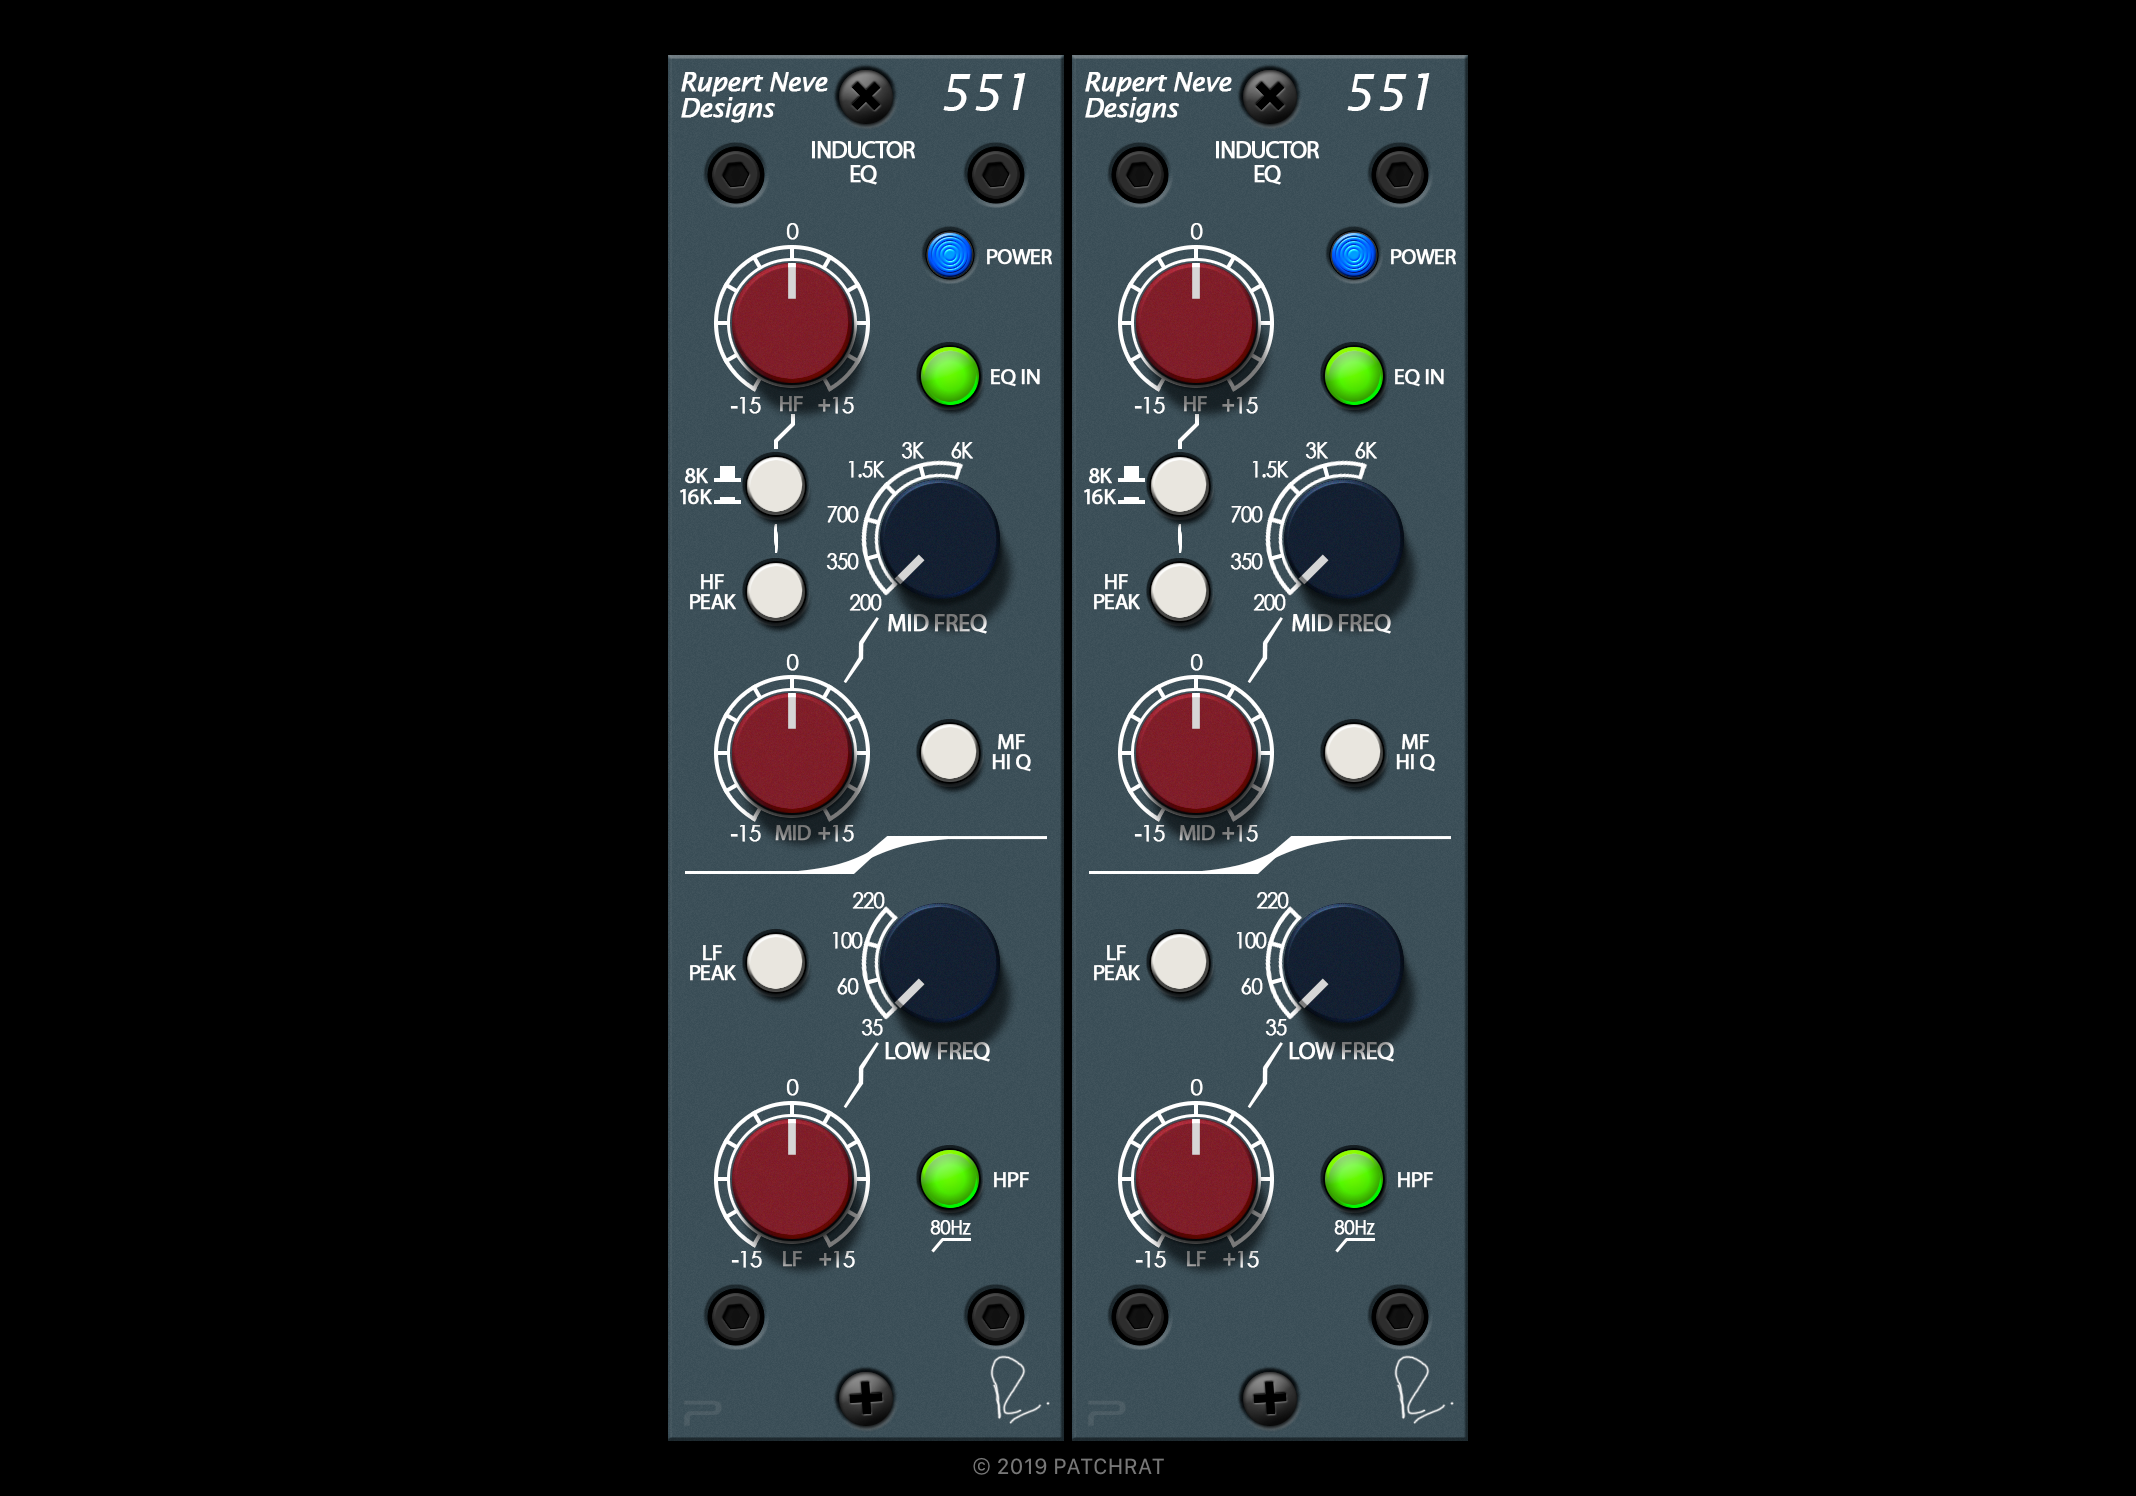 Rupert Neve Designs 551 recall module for the Patchrat app